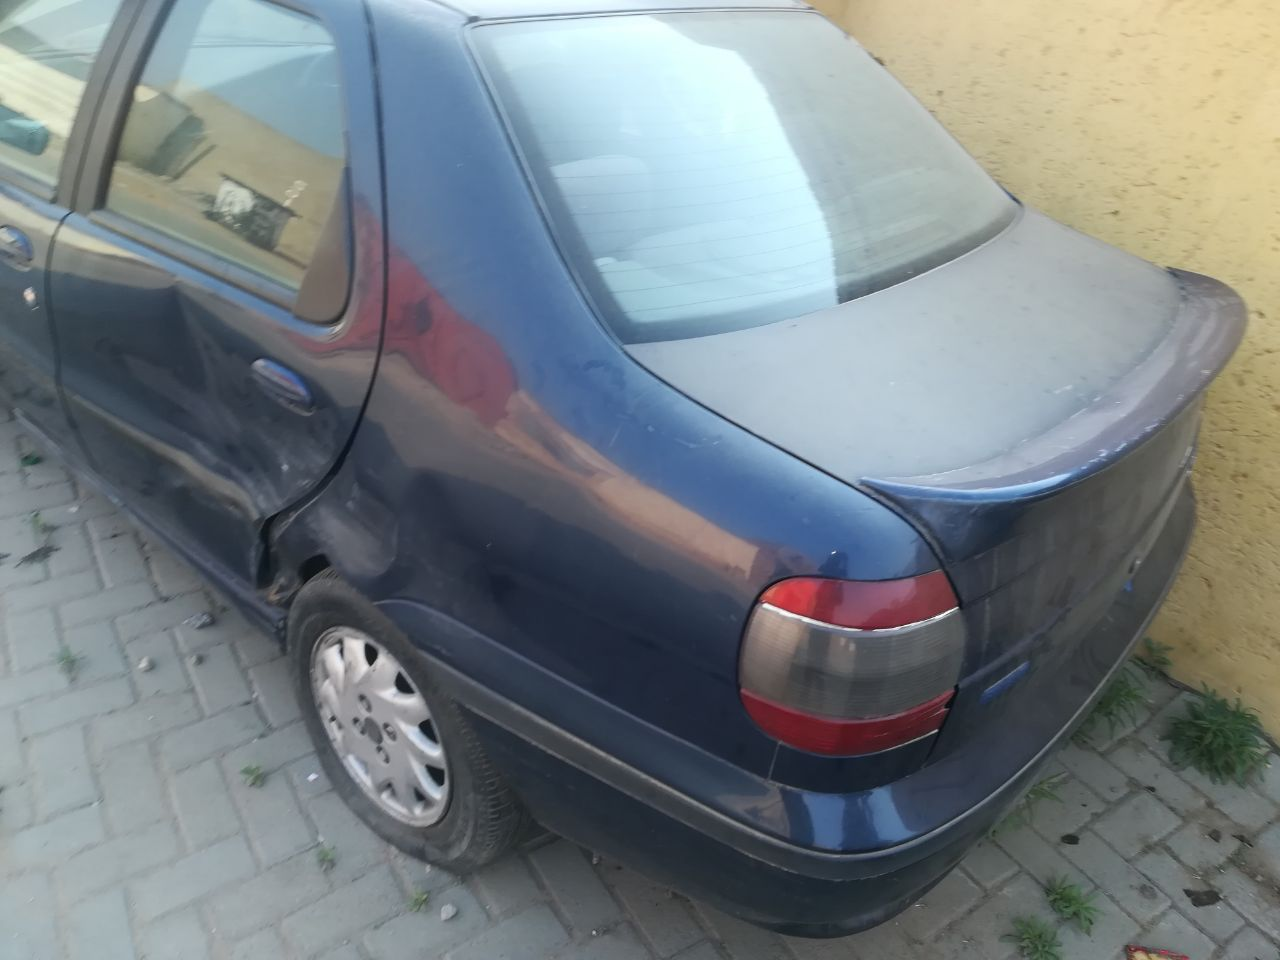 Fiat Siena 1.6 16v 2003 Model Stripping for Spares.